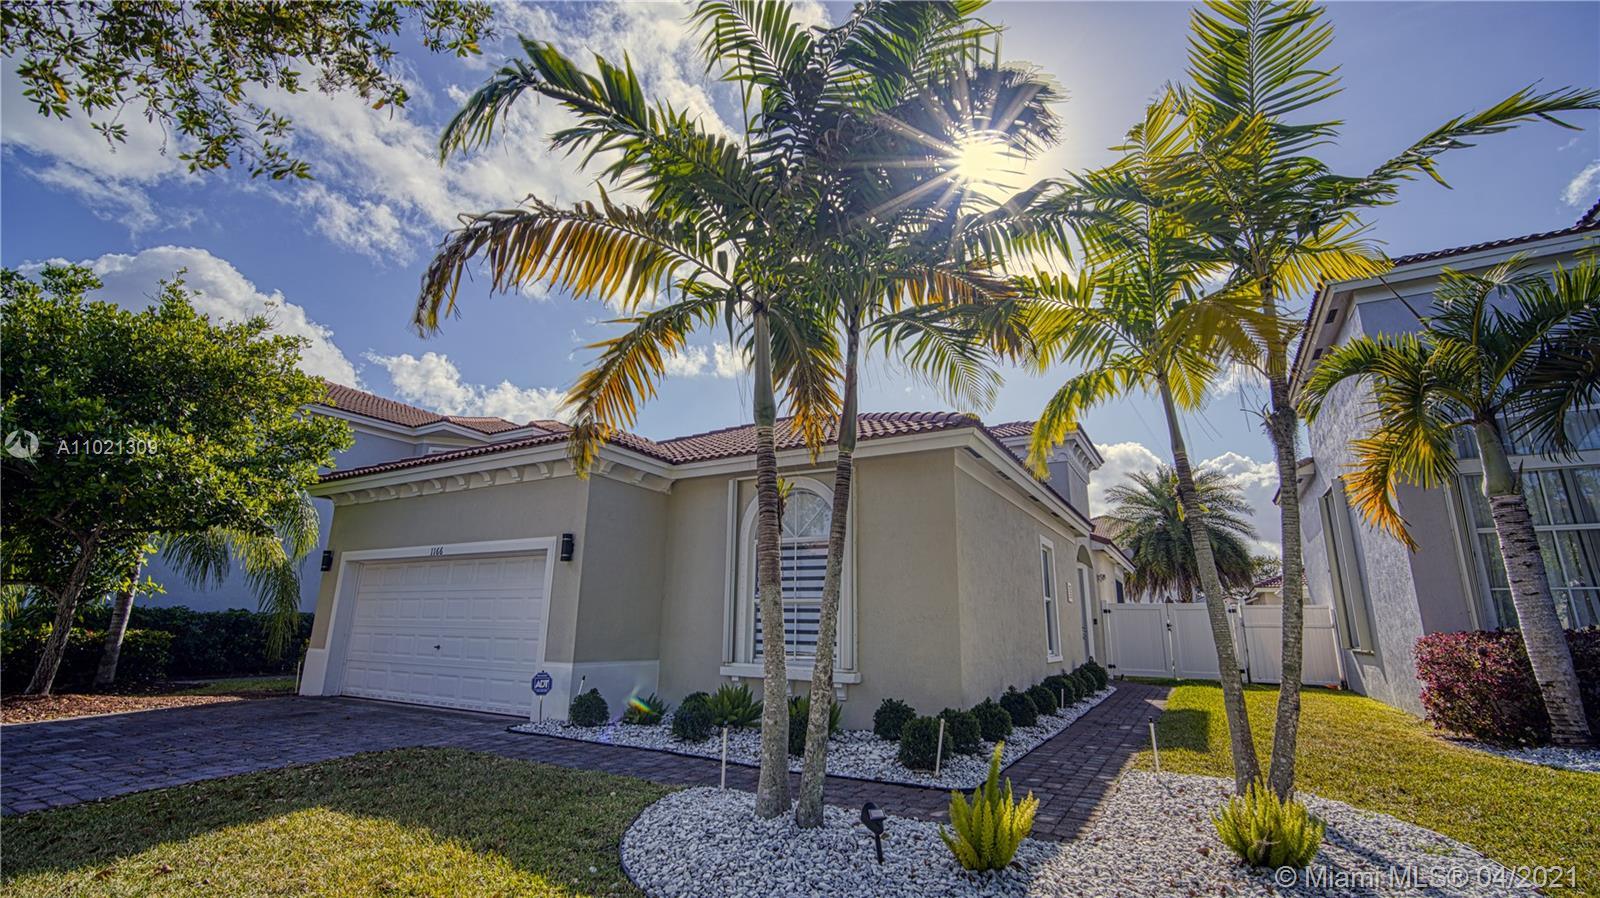 Beautiful 4 bedroom and 2 bathroom home including Car garage and great outdoor space. 